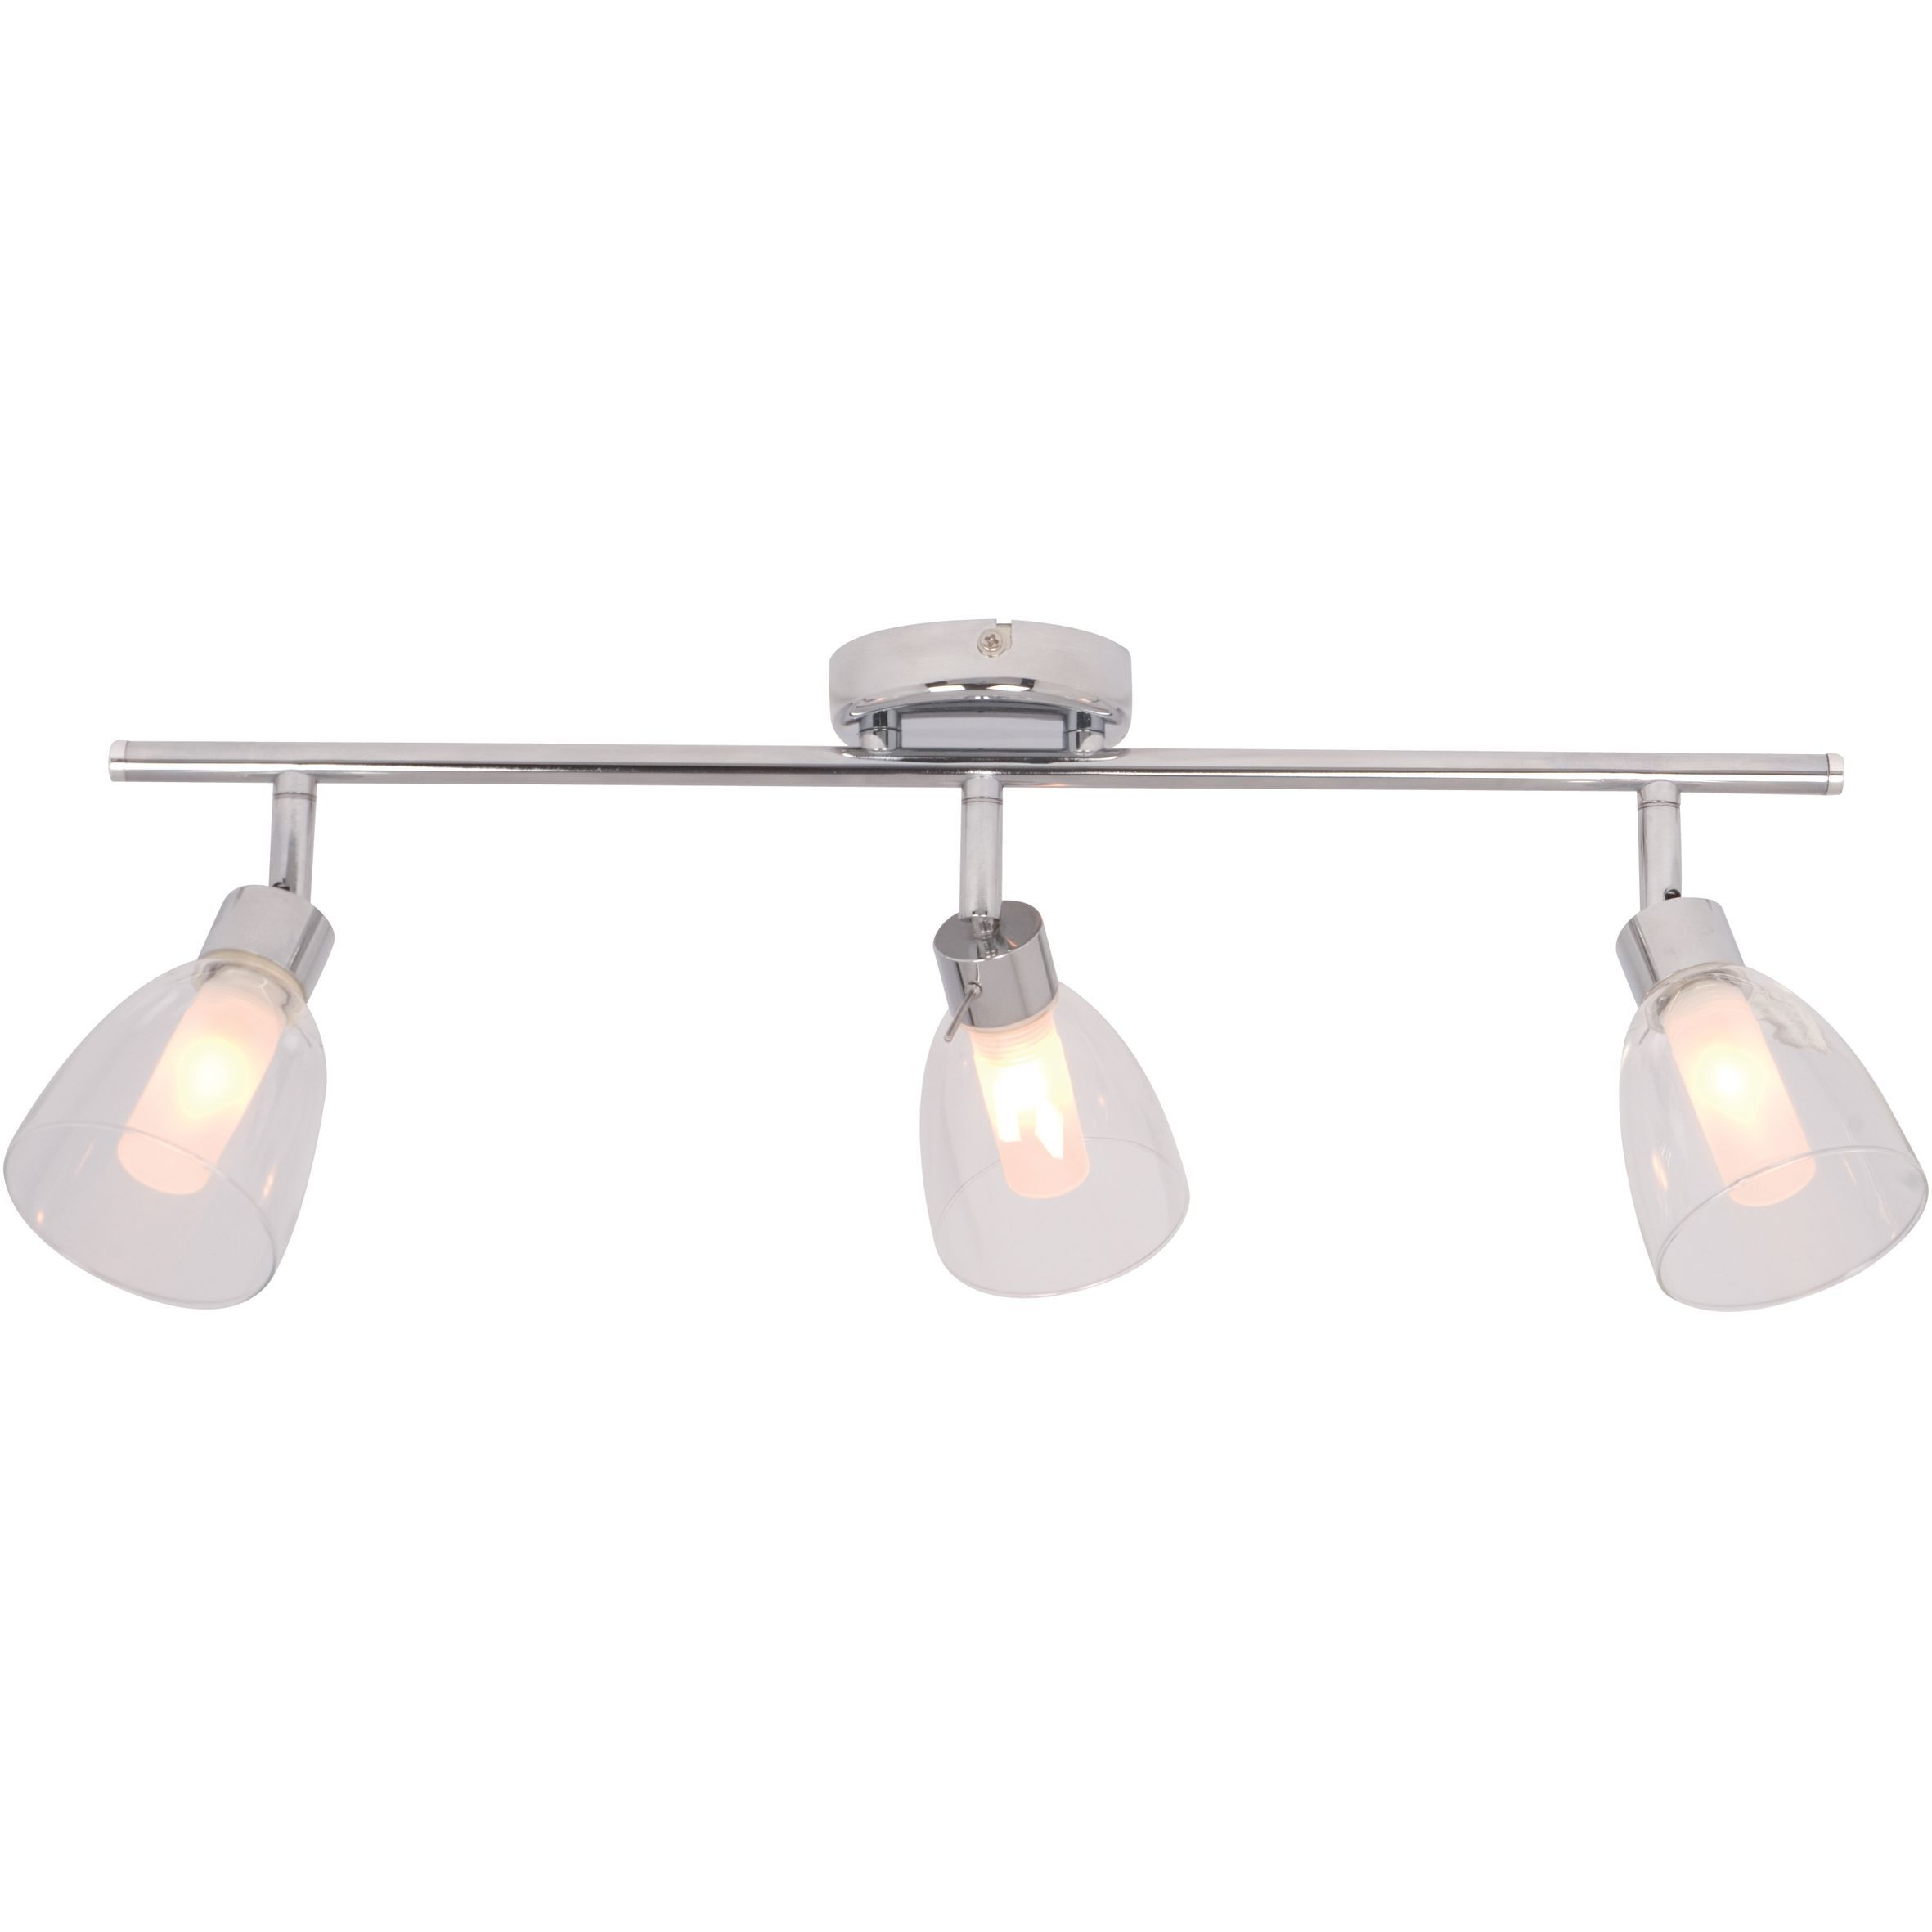 Geni Chrome Effect 3 Lamp Bathroom Spotlight | Bathroom ...